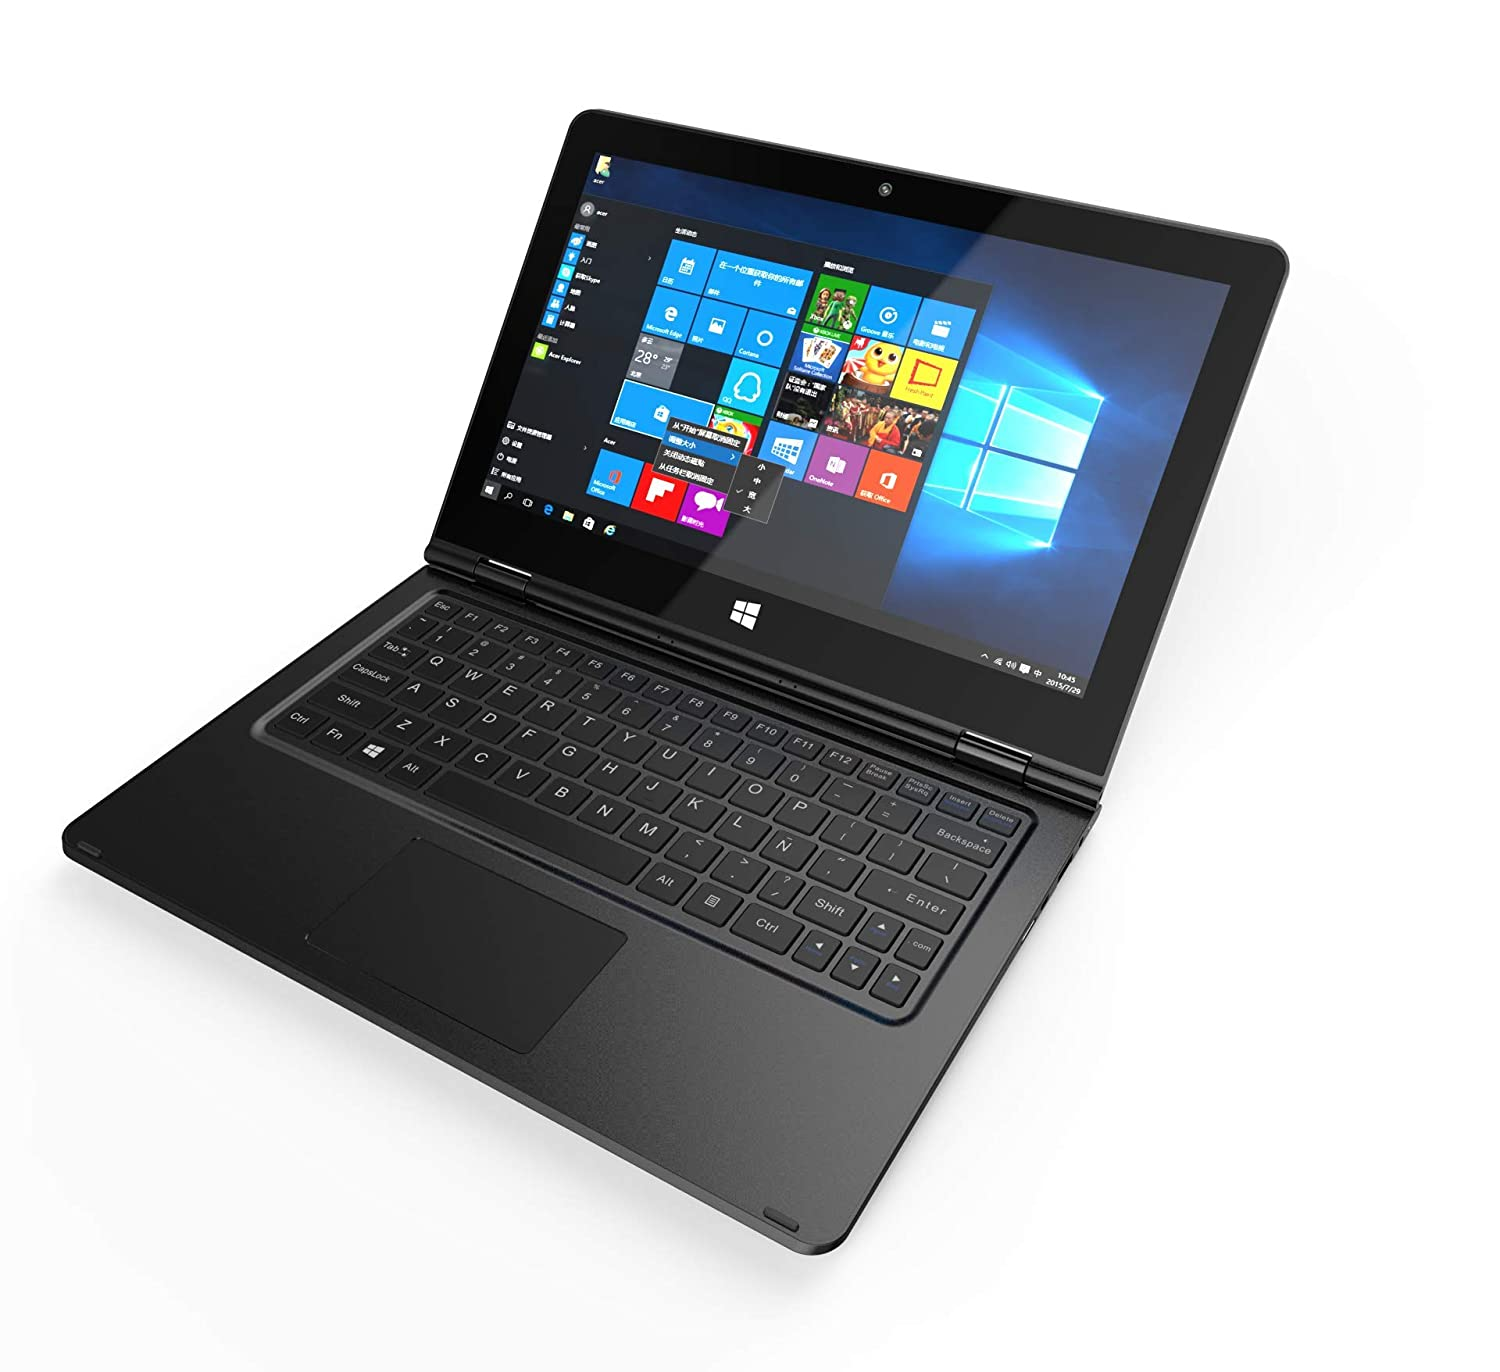 Ordenador portátil Windows 10 Convertible 11,6